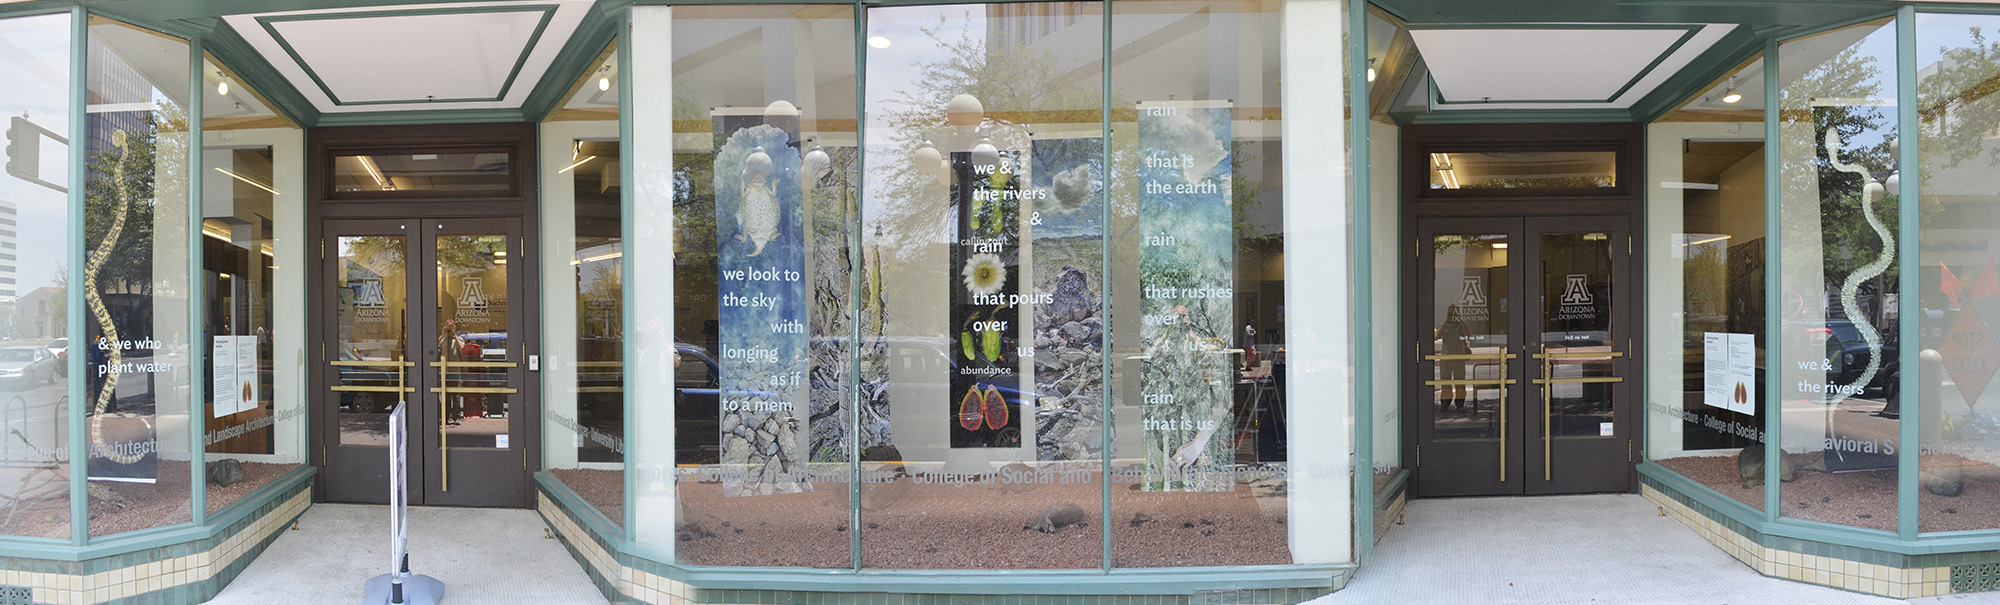 Mosaic of installation in UA Downtown store front.